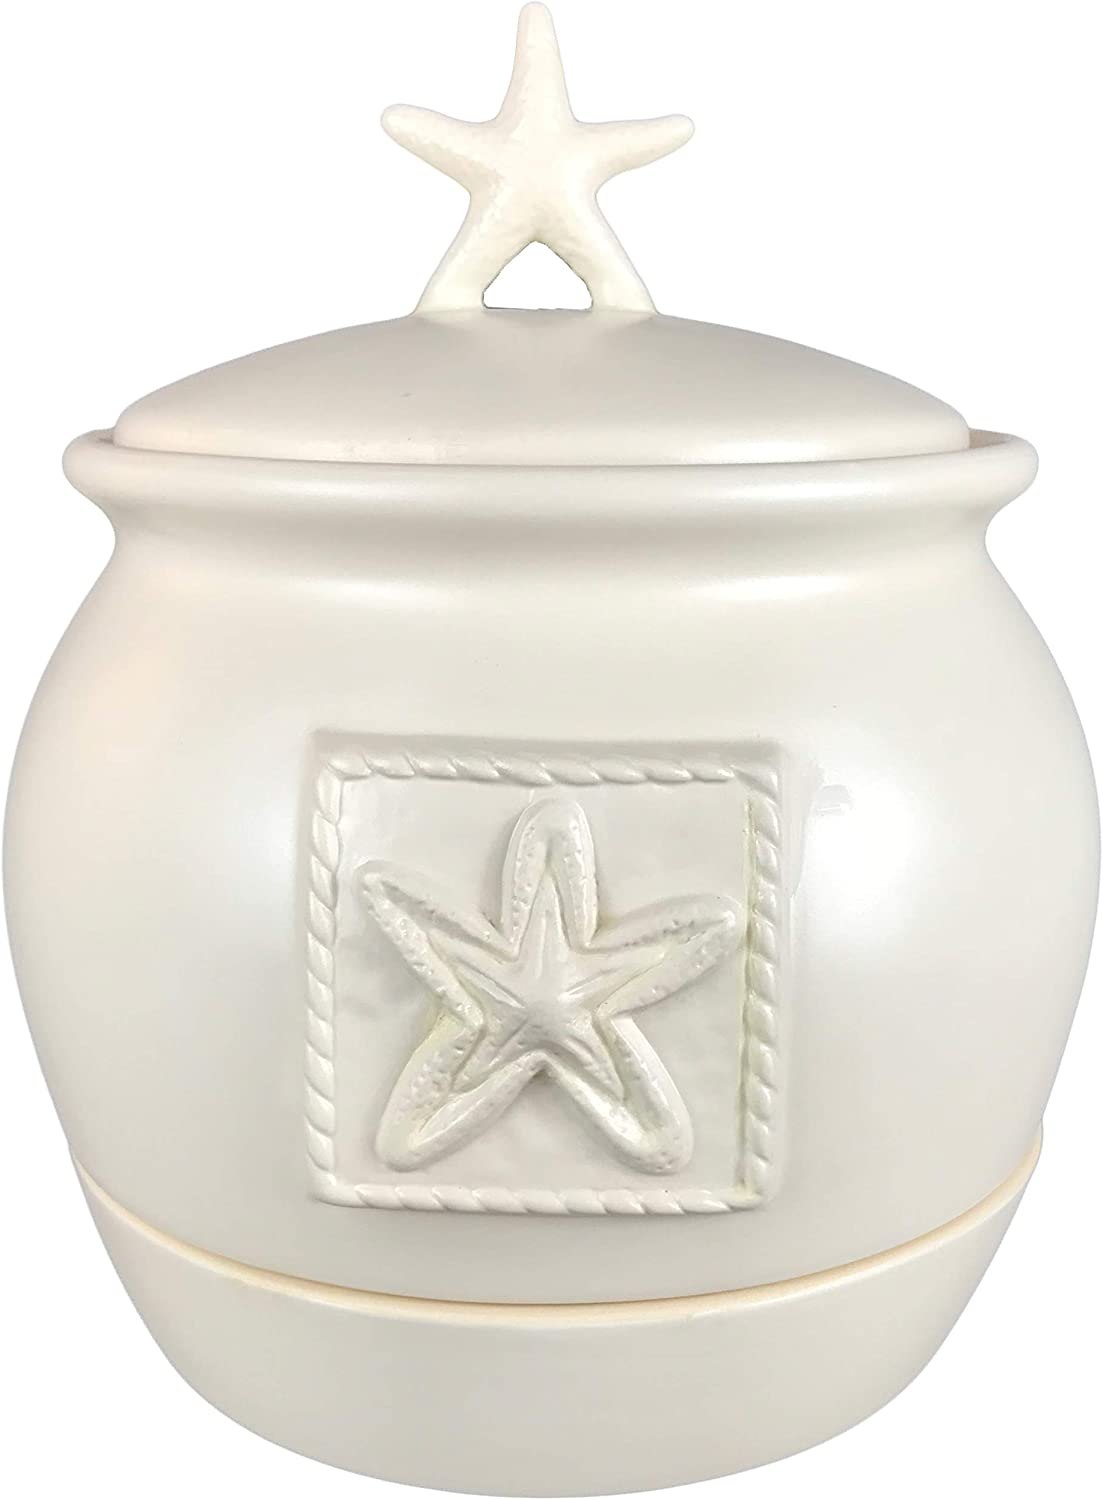 Starfish Embossed Ceramic Decorative Canister with Lid   Ivory Memory Jar for Birthday Party, Wedding or End of Life Celebration   Pretty Storage Container or Keepsake Holder   Gratitude Wishes